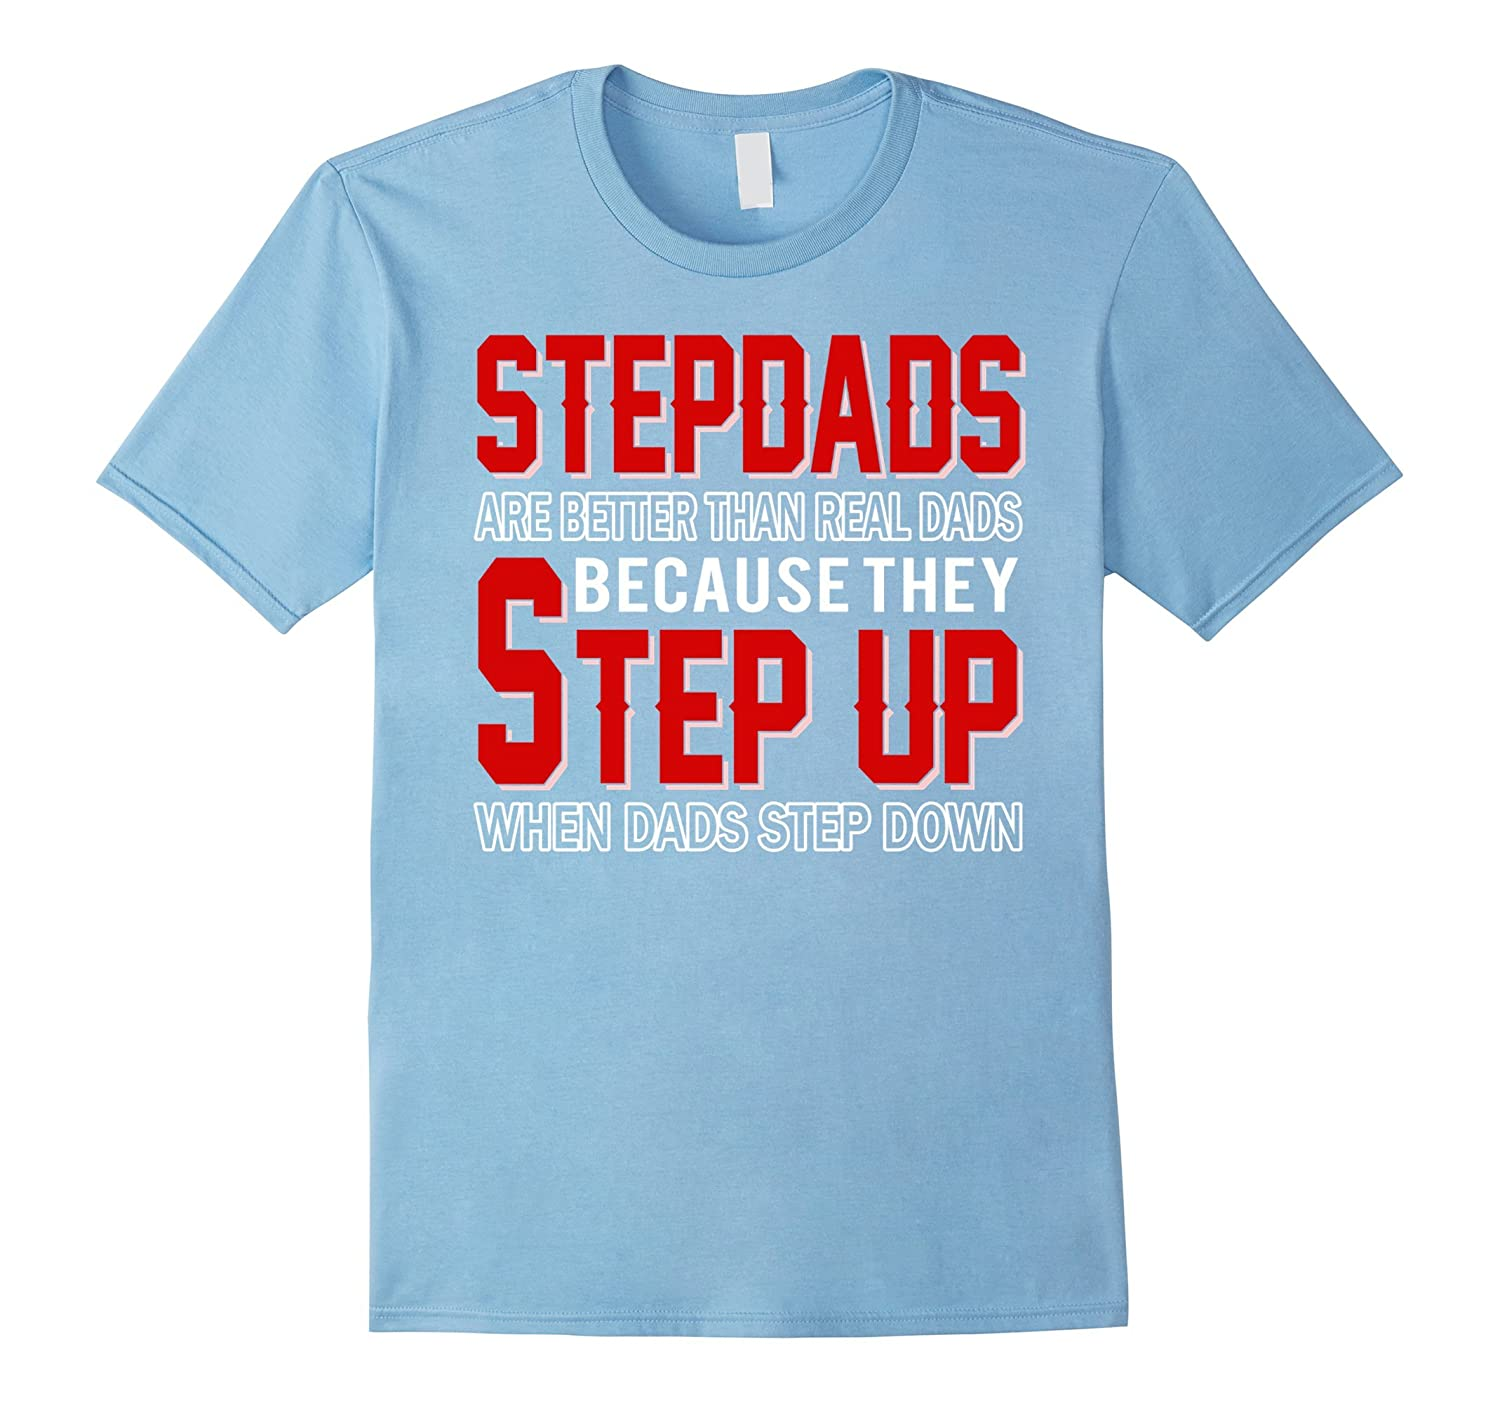 6a615a61 StepDads Are Better Than Real Dads T-Shirt-TD – Teedep